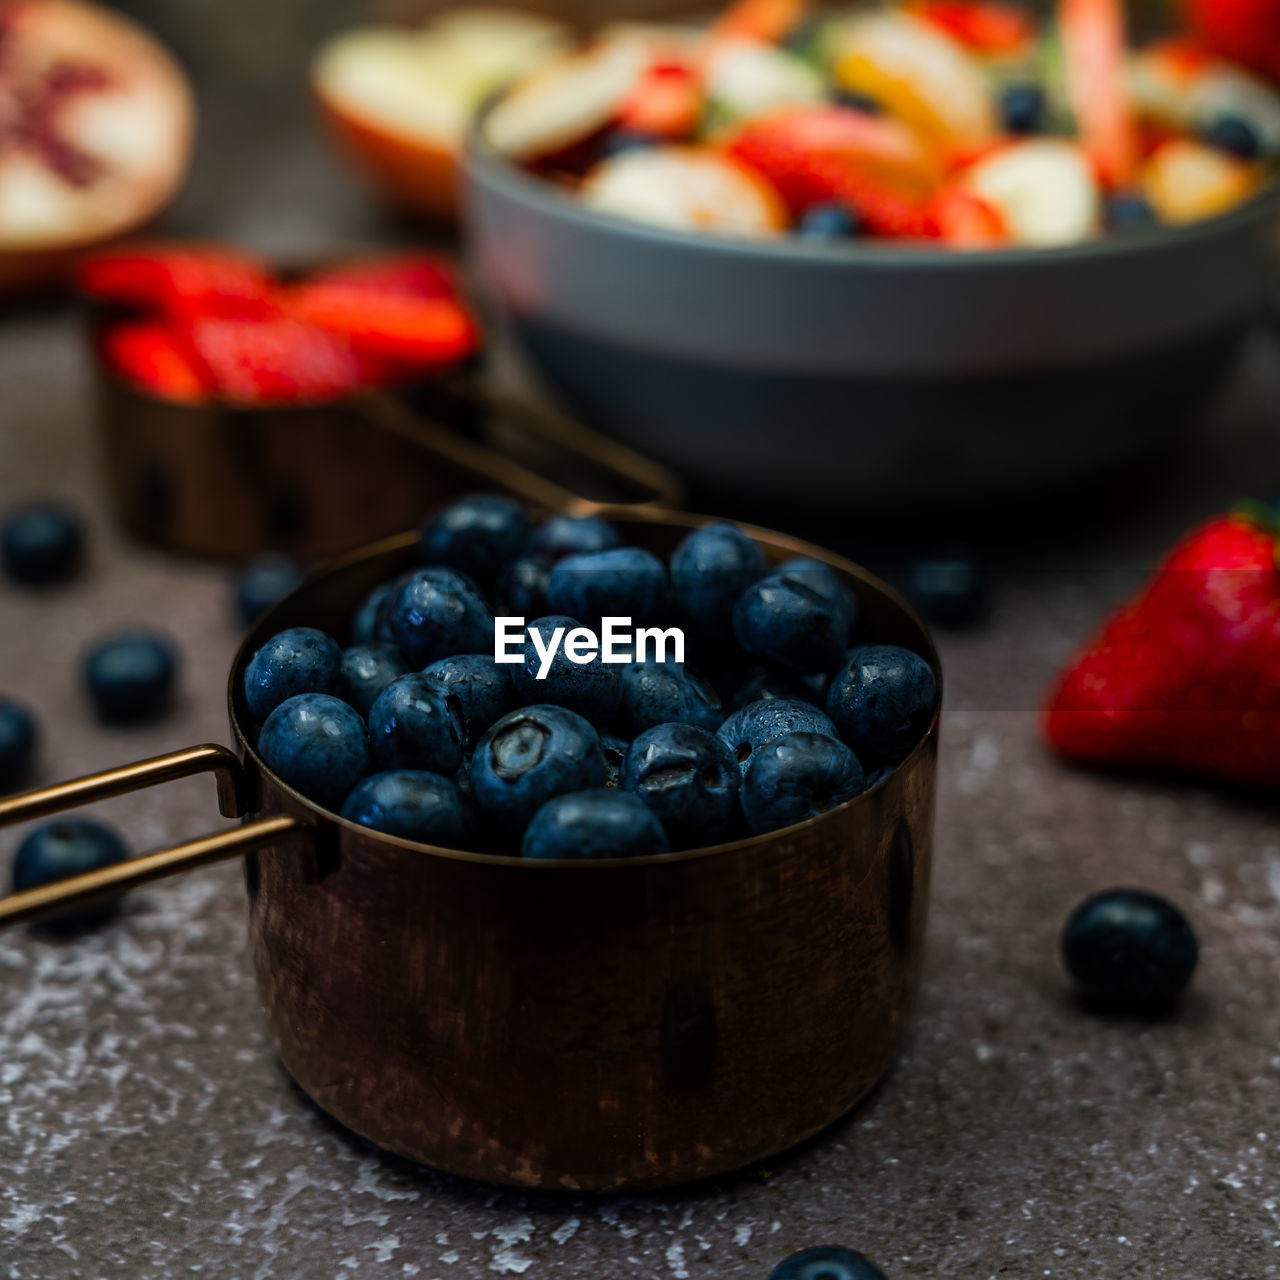 Close-up of blueberries in measuring cup on table with assortment of fruit